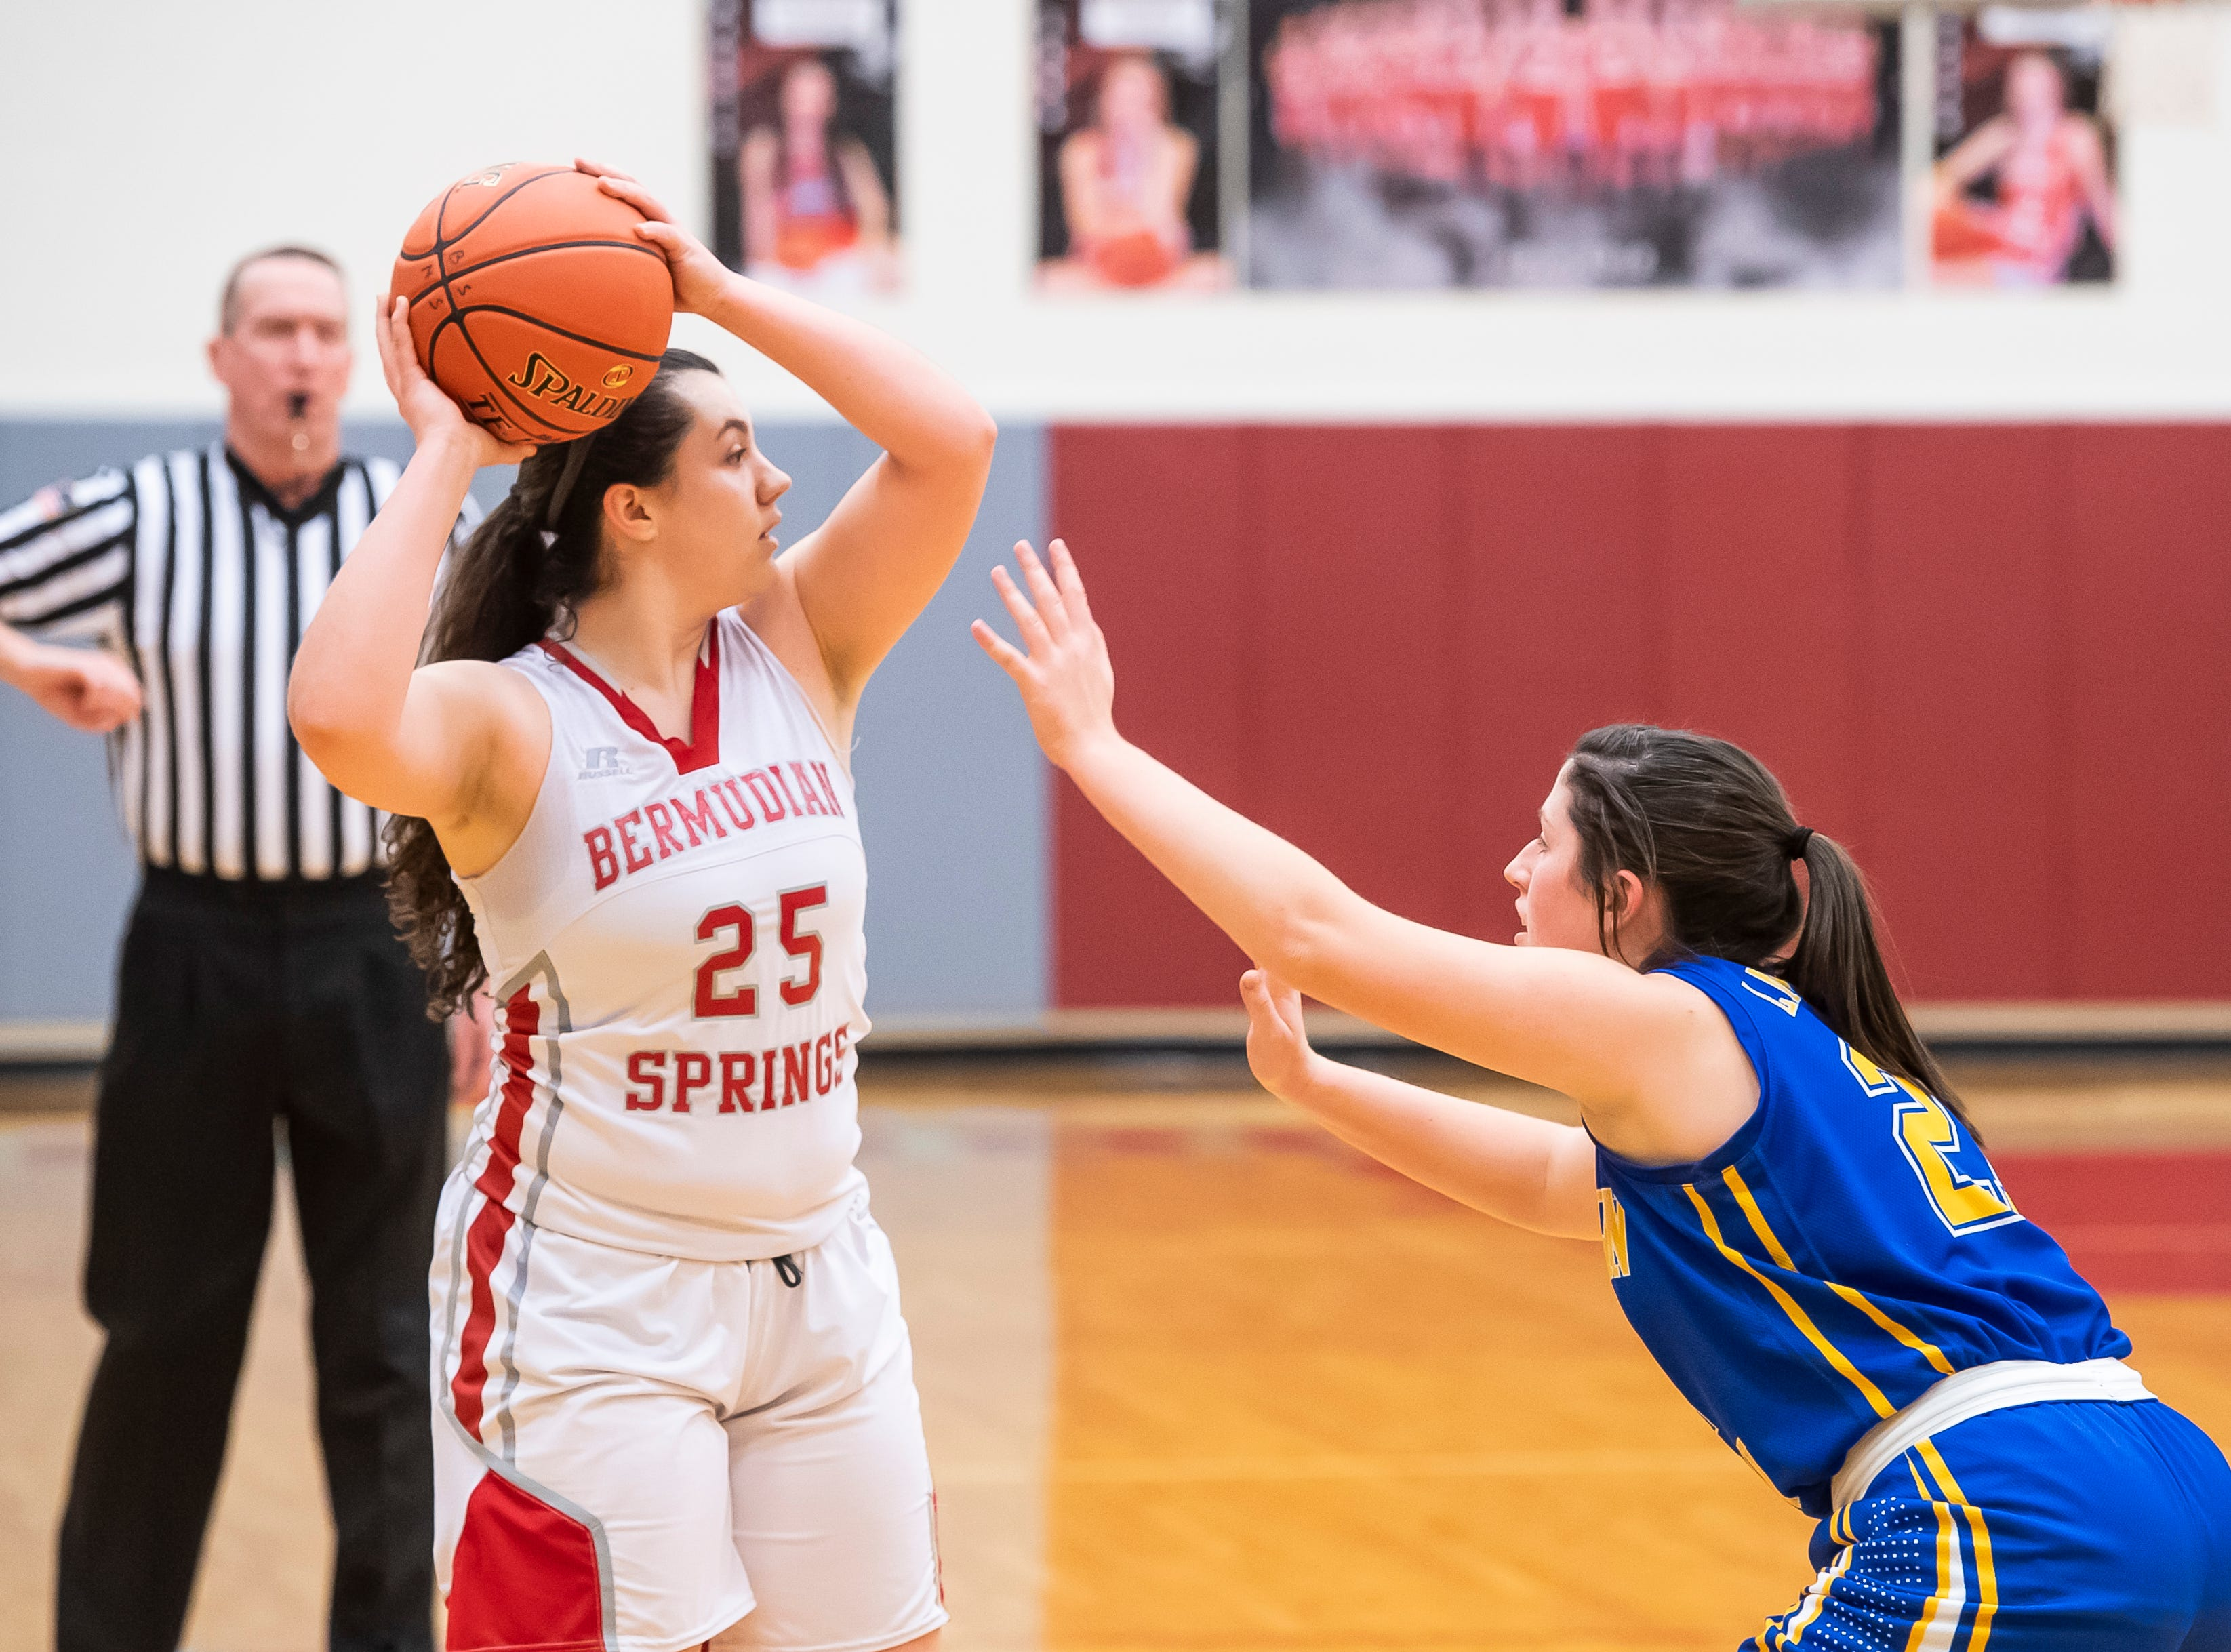 Bermudian Springs' Emily Shearer looks to pass during play against Northern Lebanon in the first round of the District III 4-A playoffs Tuesday, February 19, 2019. The Eagles won 58-52.